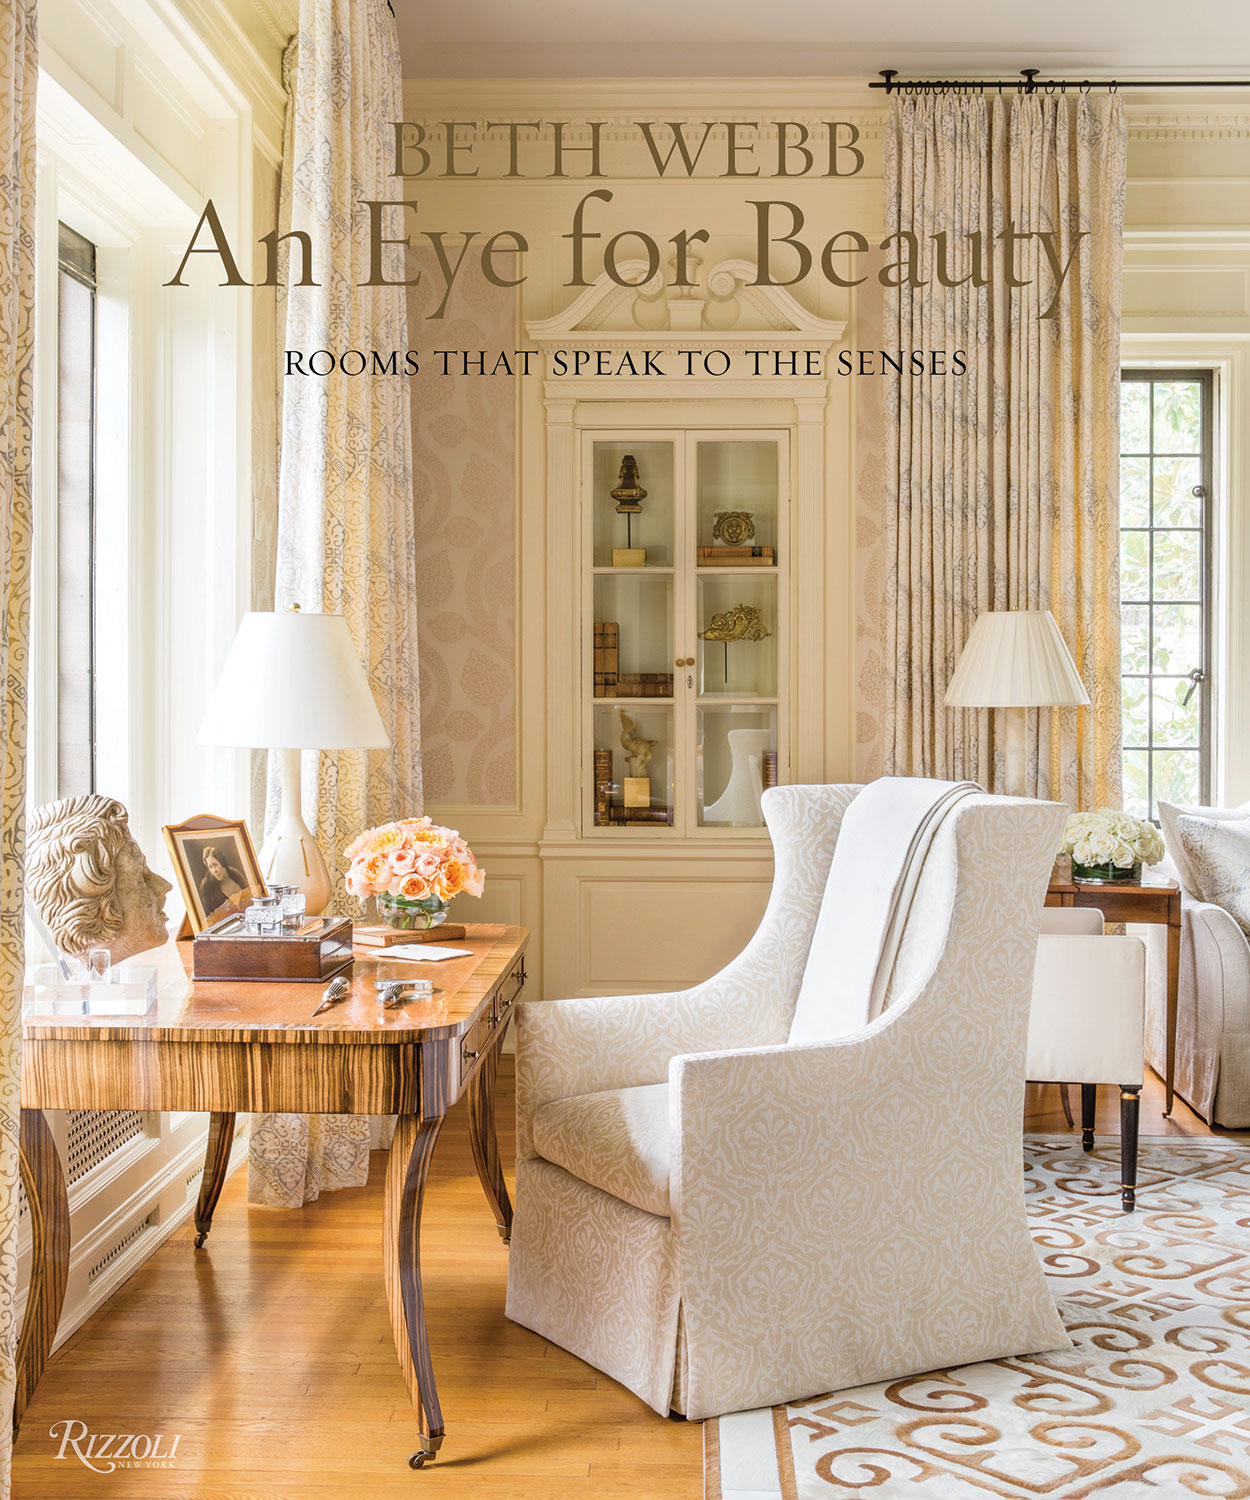 An Eye For Beauty Rooms That Speak To The Senses Flower Magazine